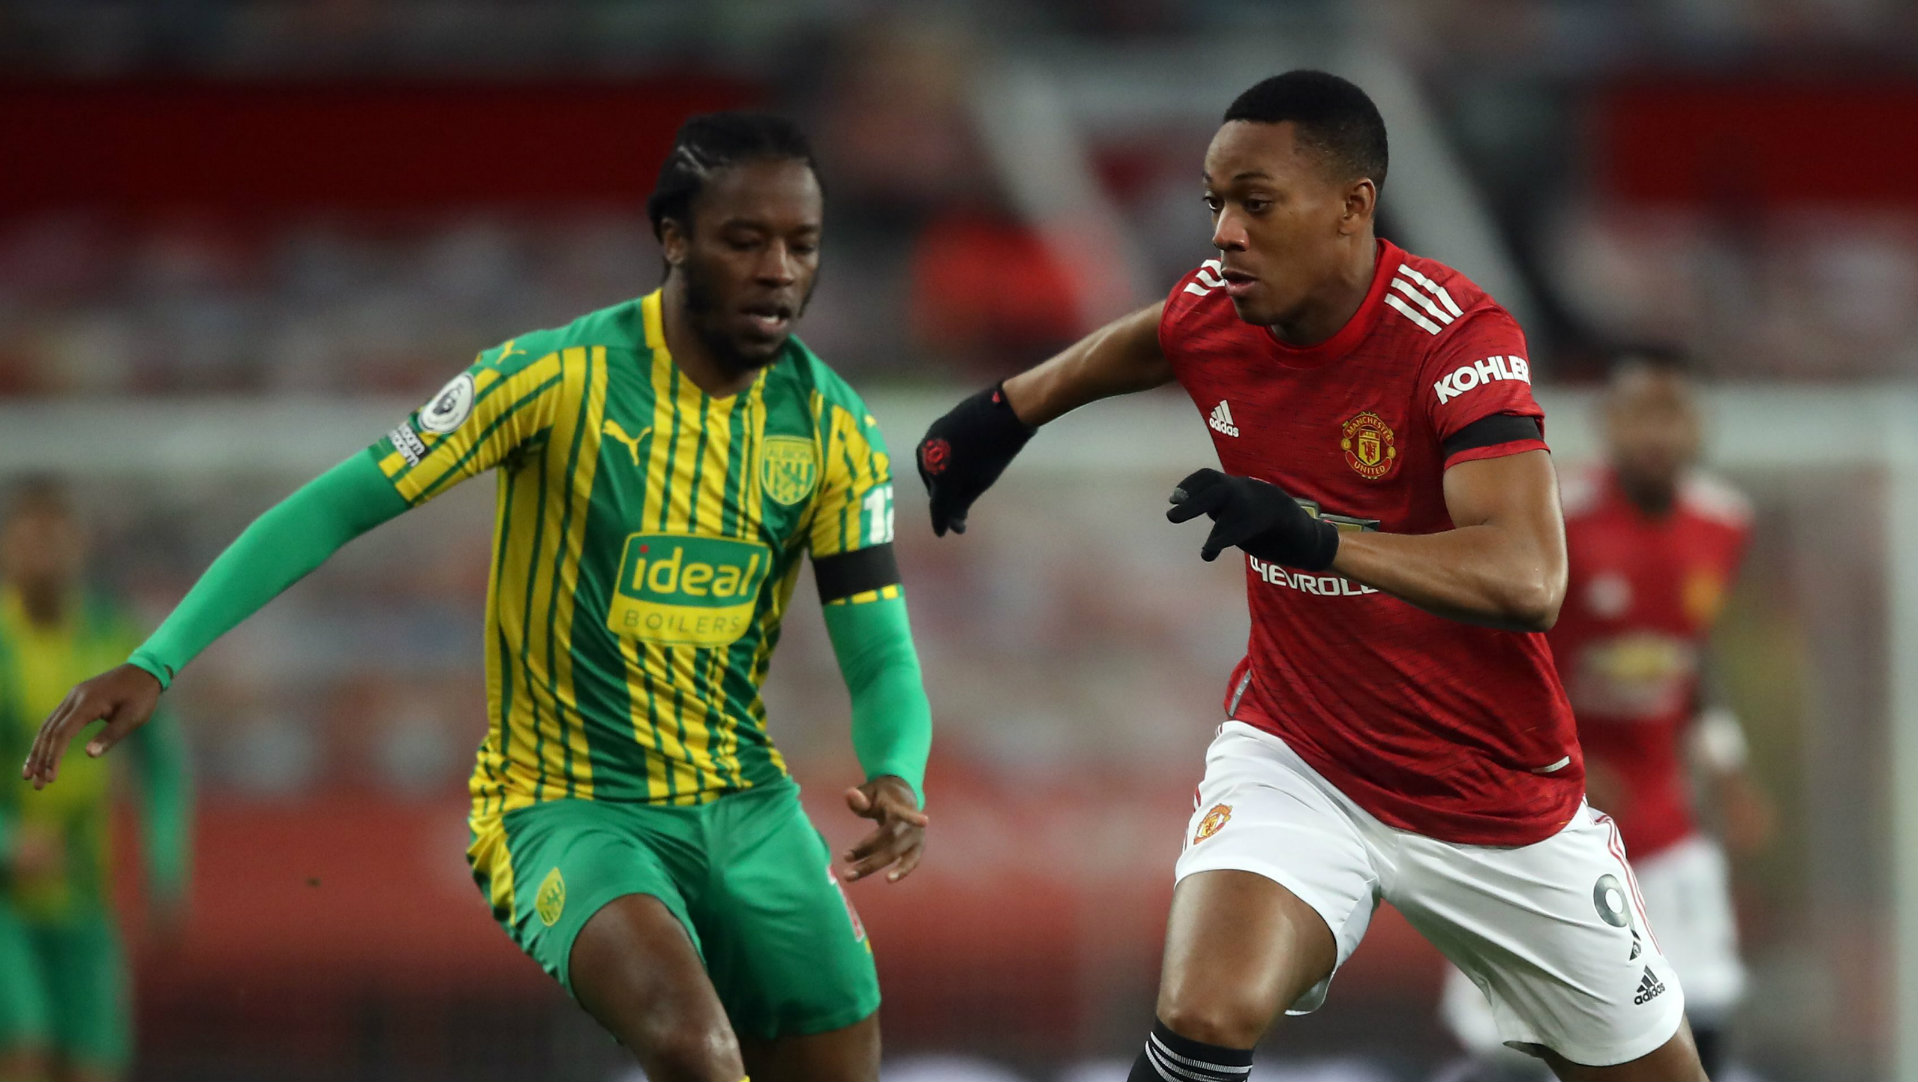 'I'm worried about Martial' - Man Utd star must become a 'killer' in the box, says Leboeuf